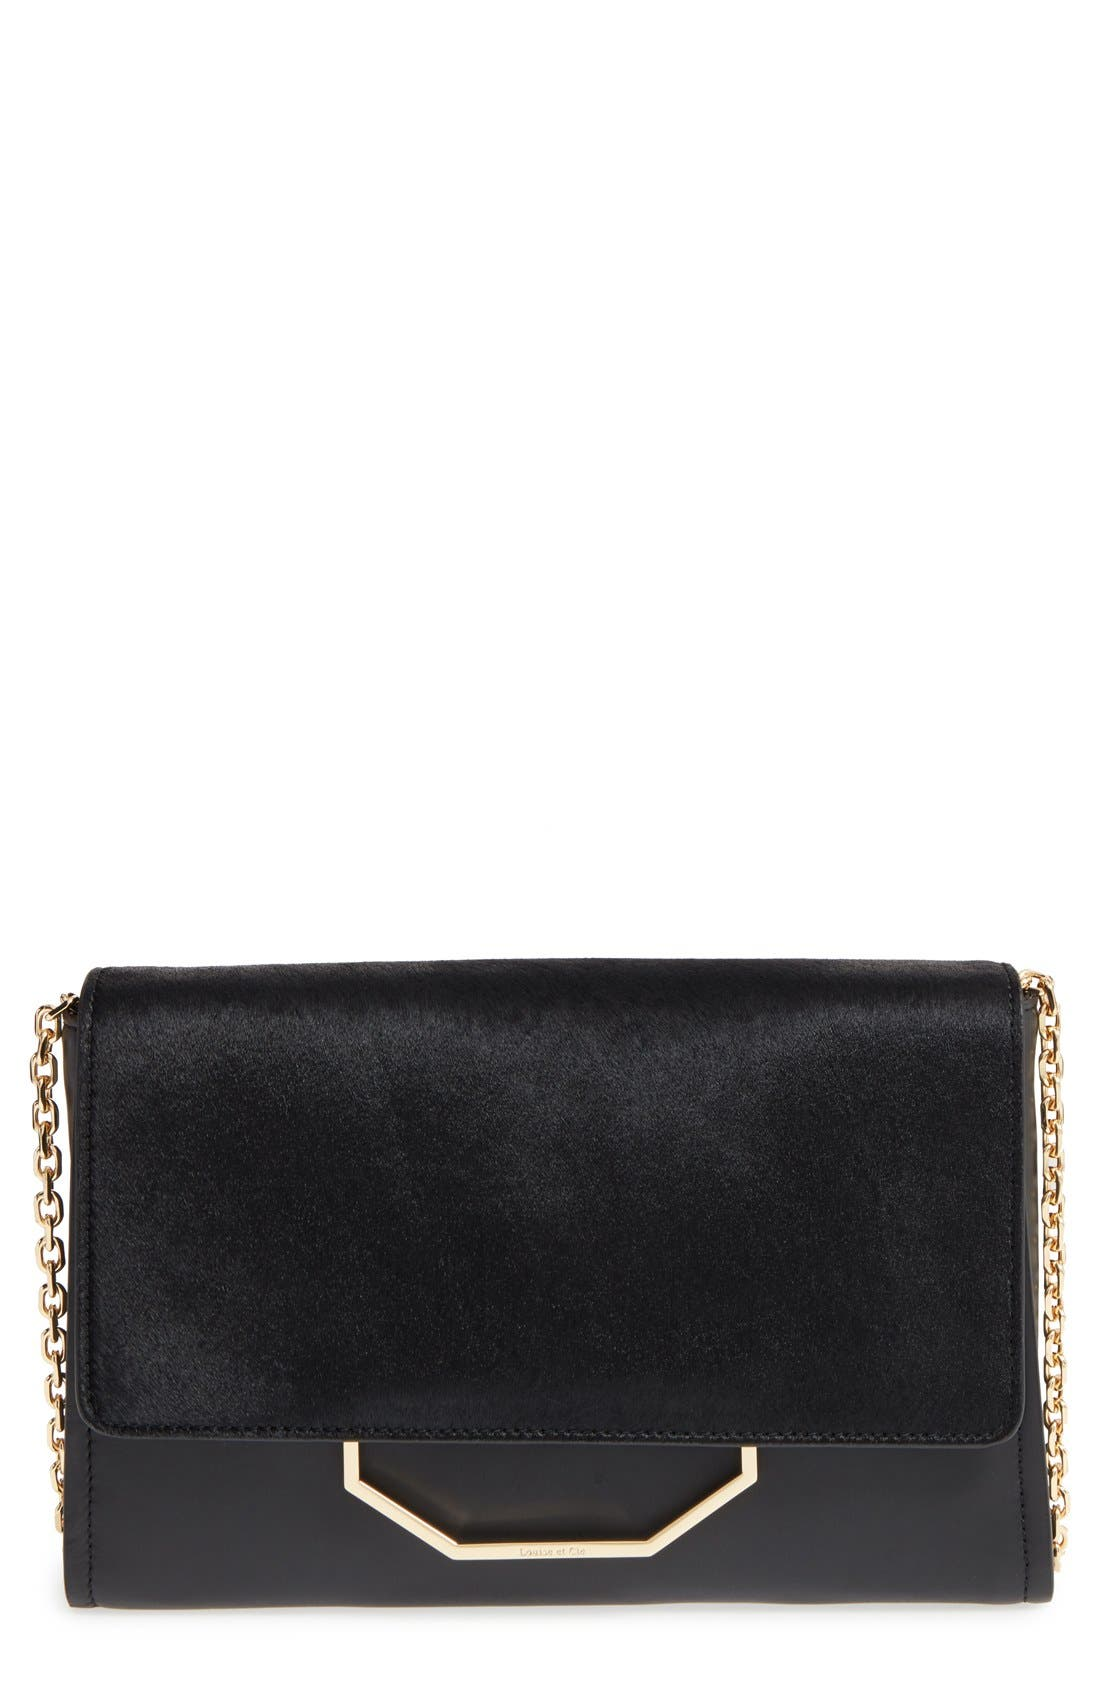 'Towa' Leather Clutch, Main, color, 001